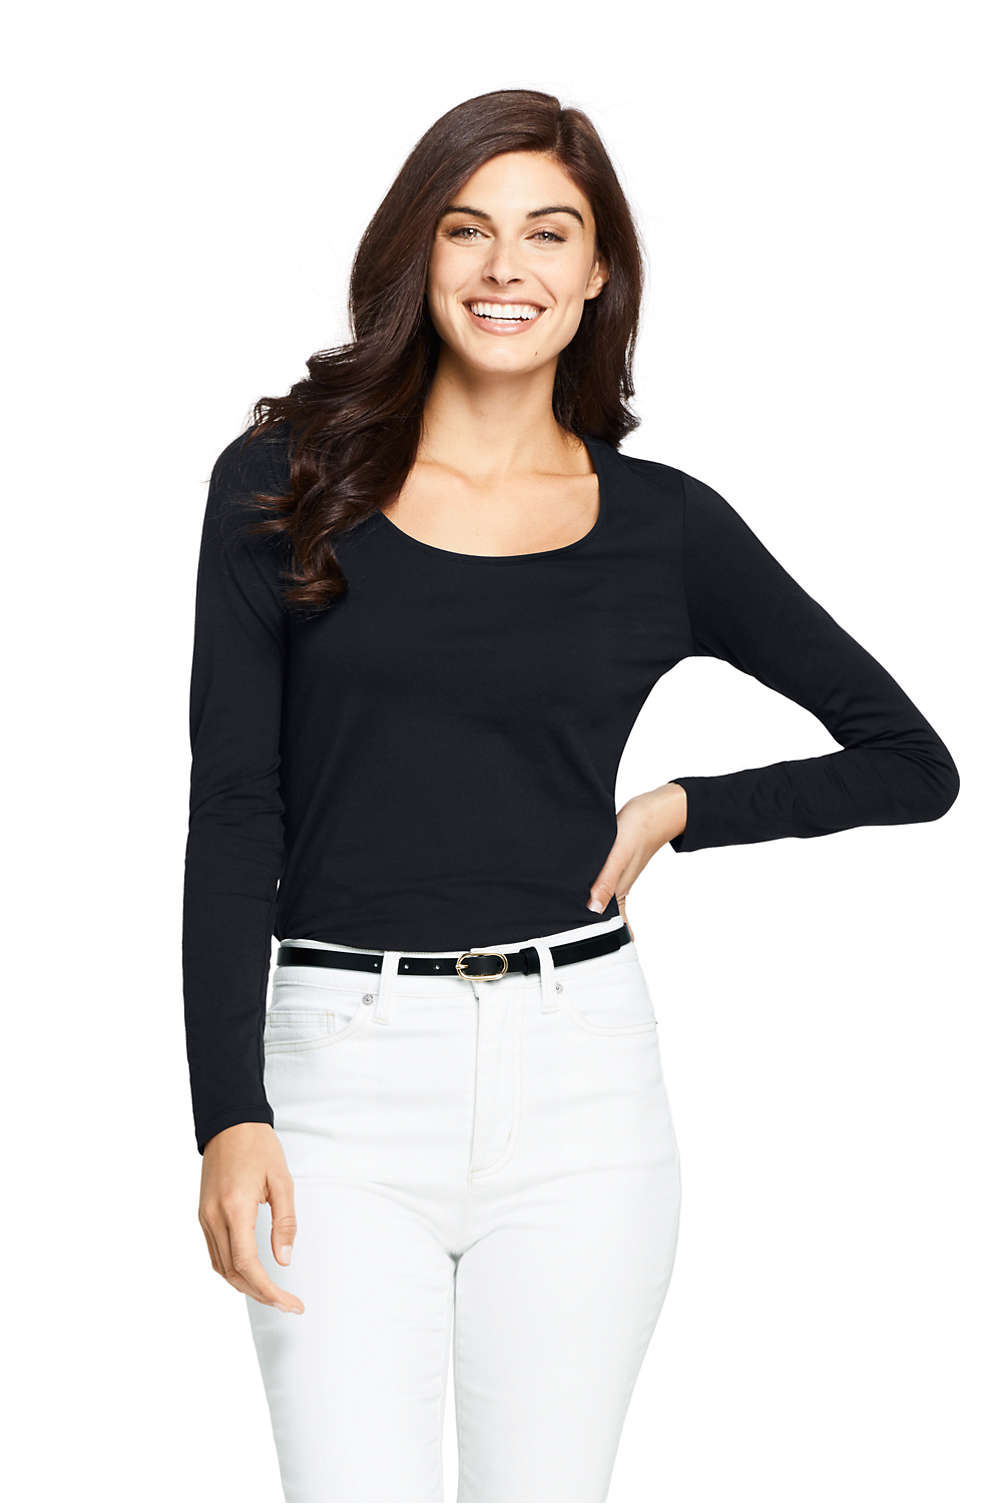 577e28dda9aa Women's Long Sleeve Fitted Scoopneck T-shirt from Lands' End